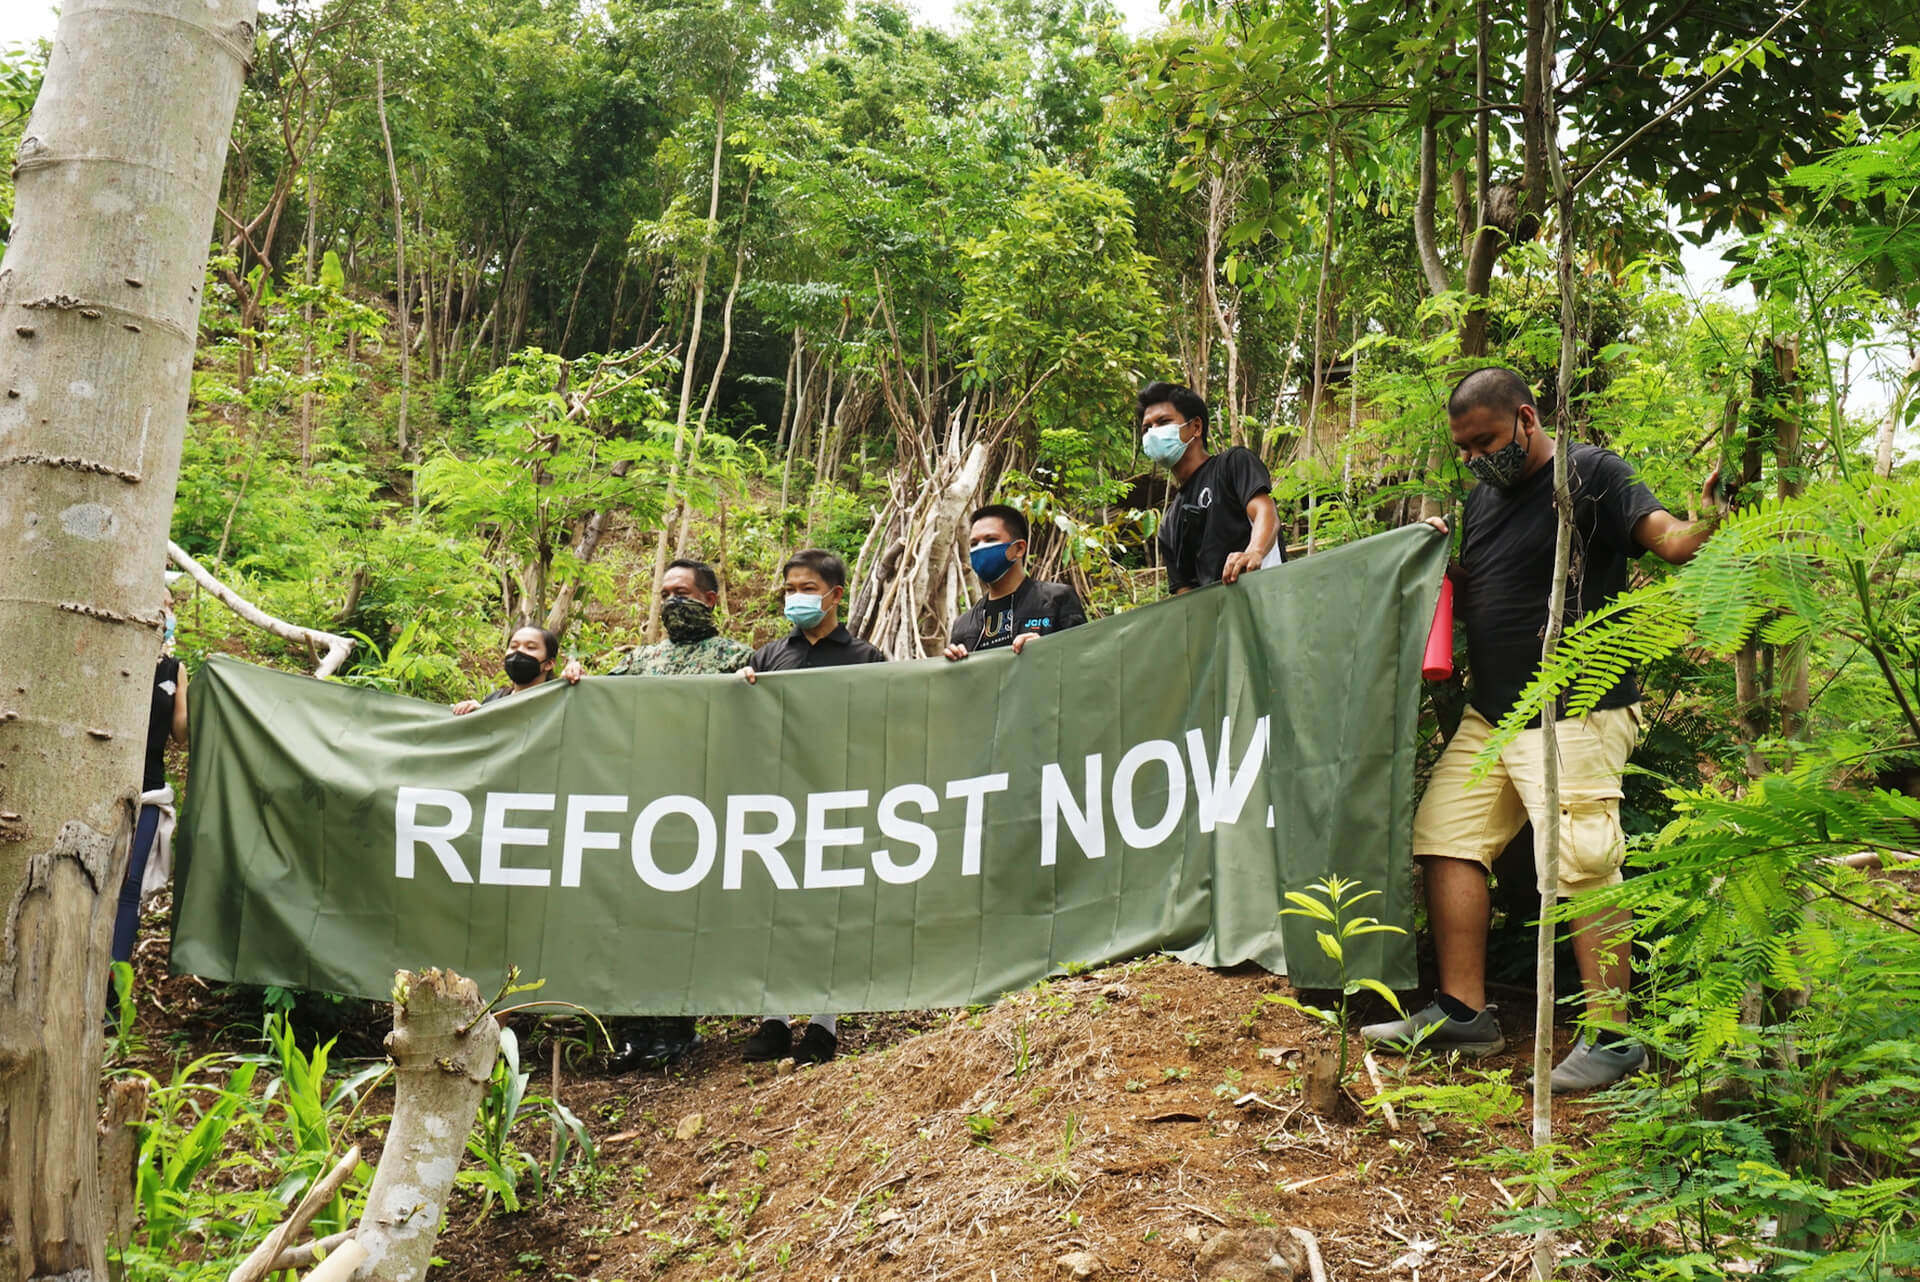 At Masungi Georeserve, local officials joined park rangers' call against deforestation